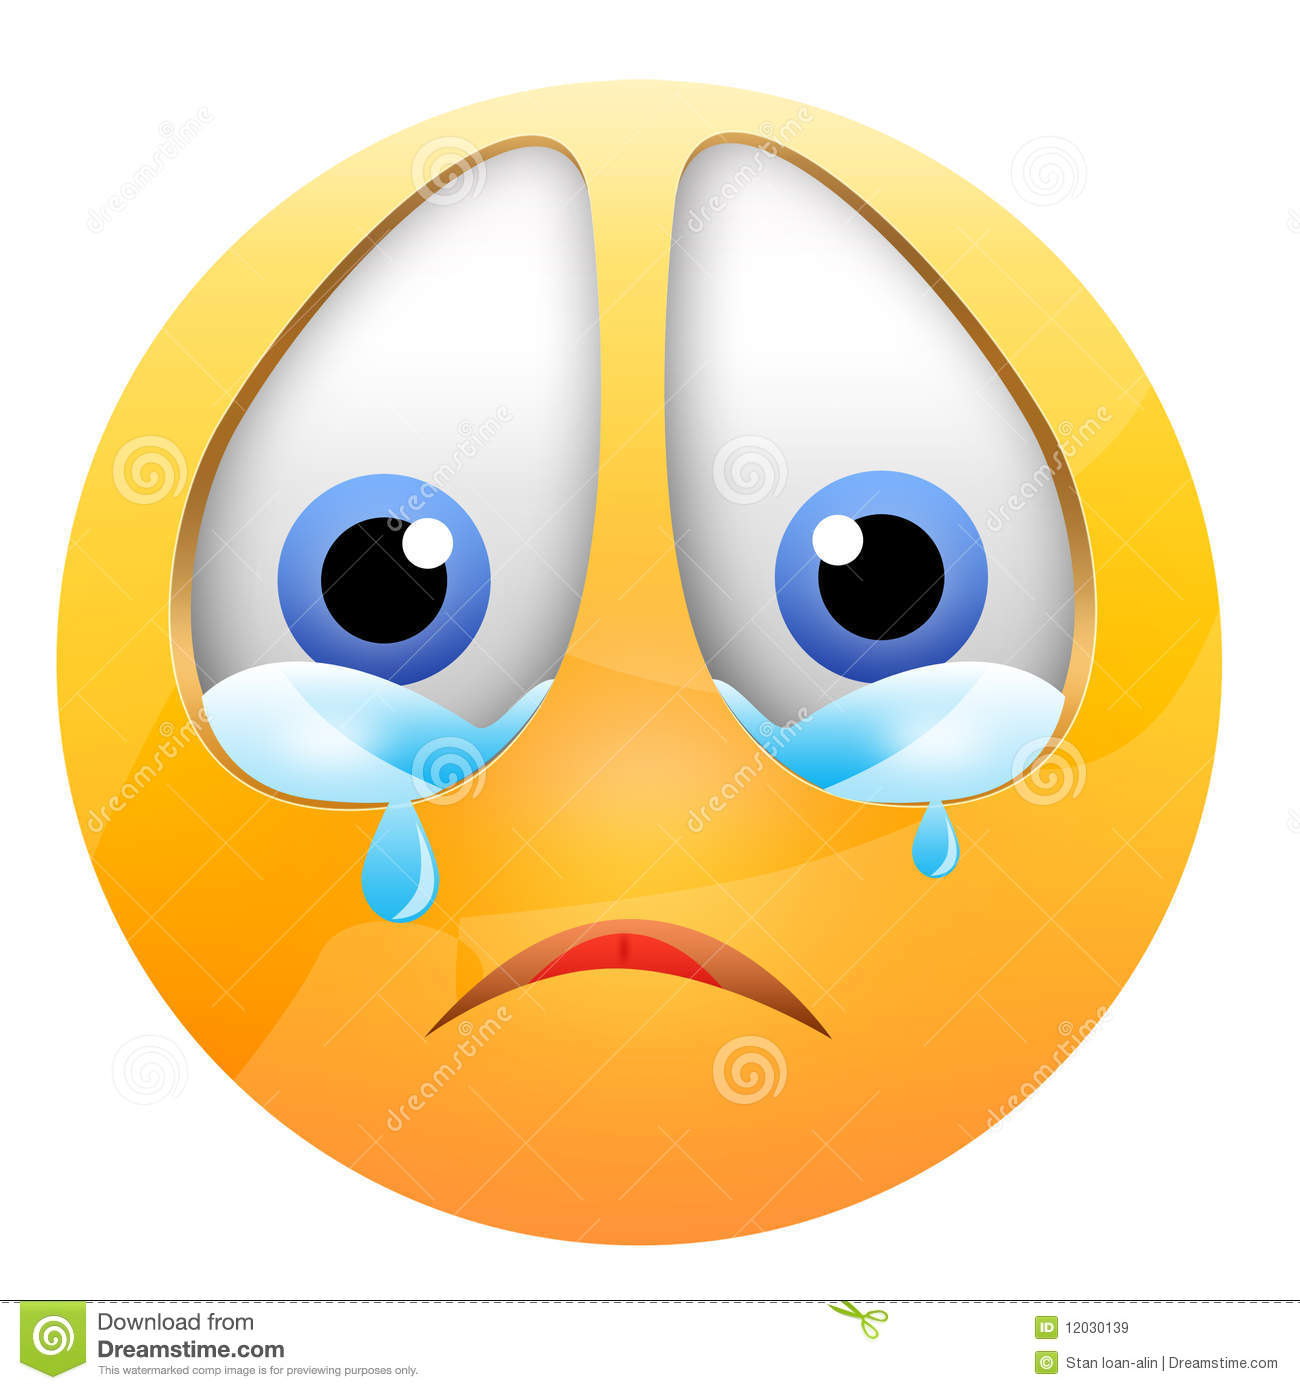 Crying Smiley Royalty Free Stock Images - Image: 12030139: www.dreamstime.com/royalty-free-stock-images-crying-smiley...